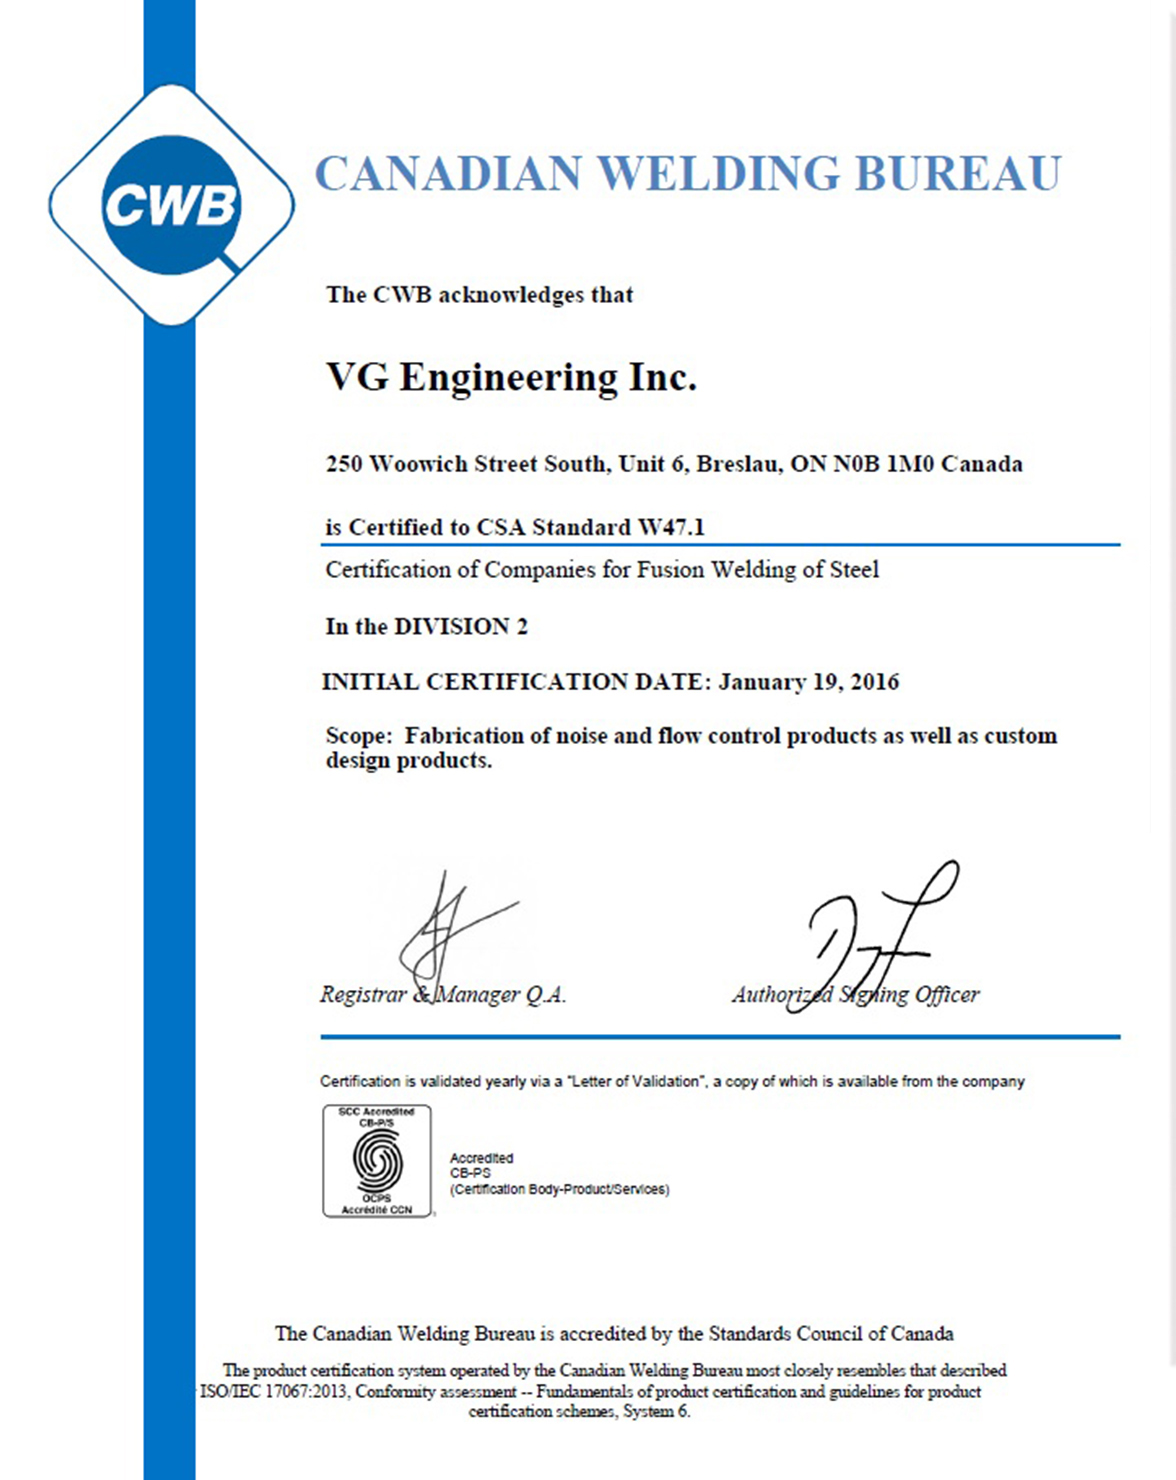 Certification and Quality System | VG Engineering